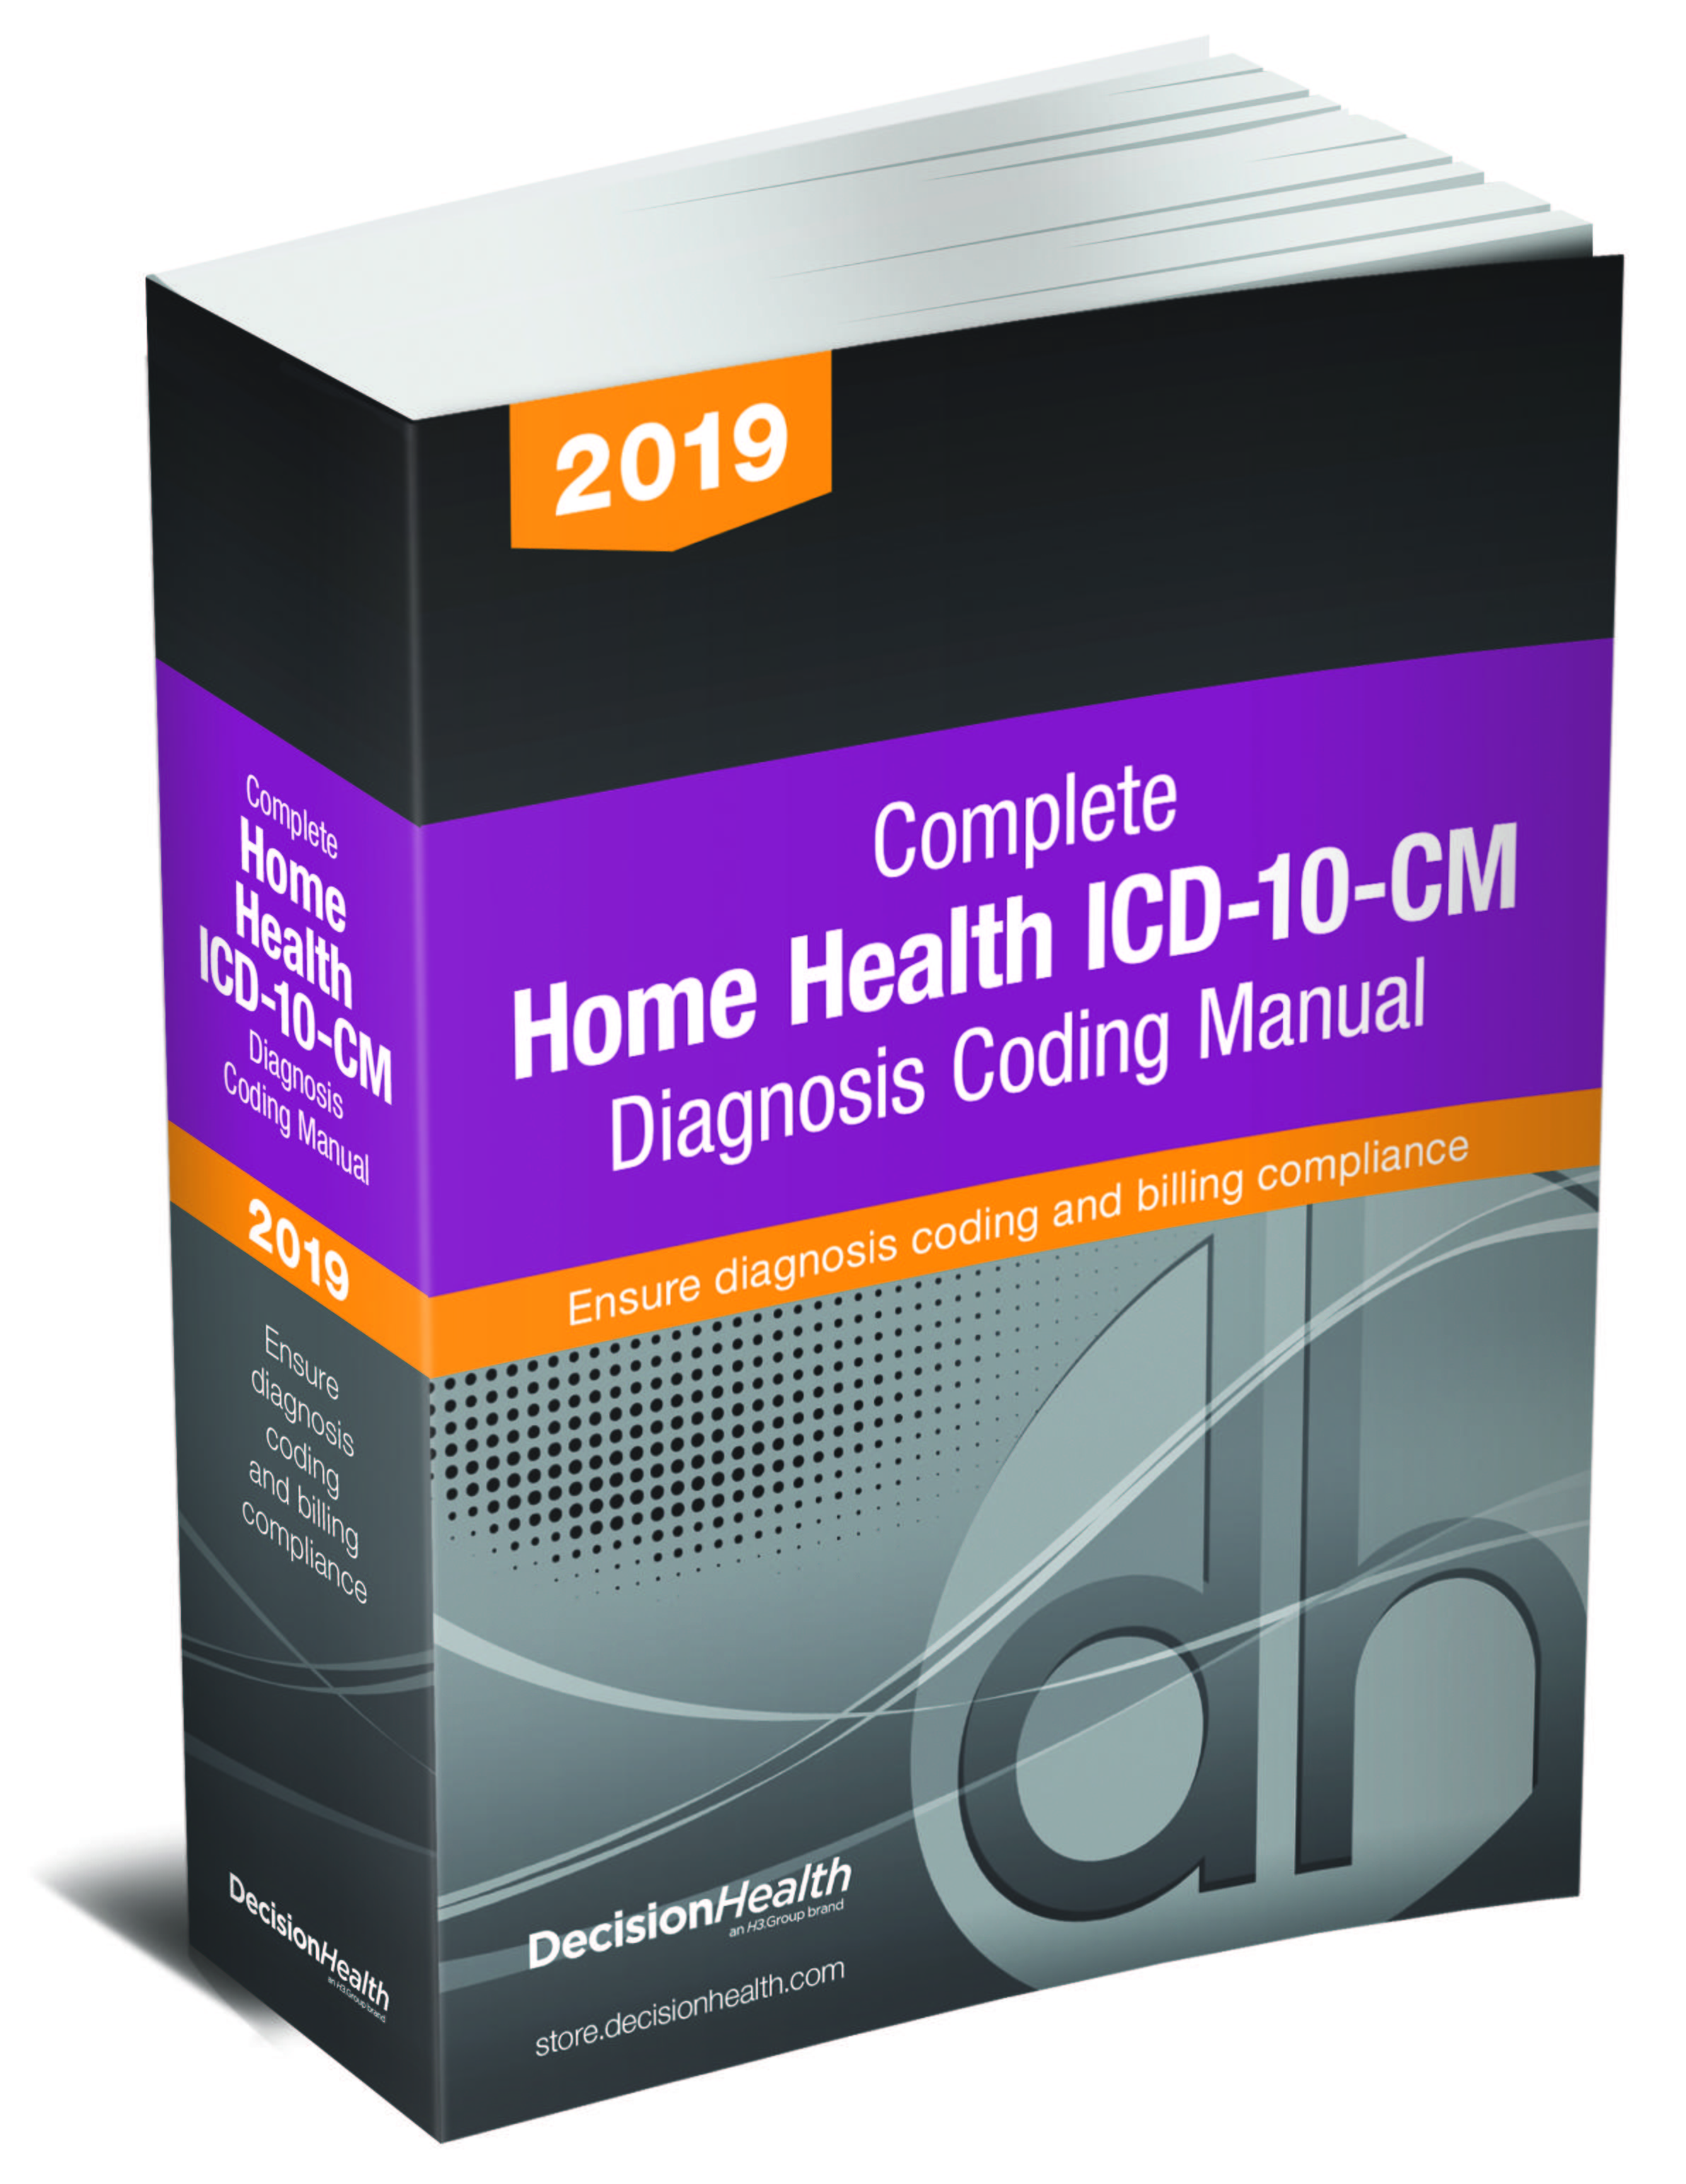 Introduction To The 2019 Icd 10 Cm Coding Manual Manual Guide